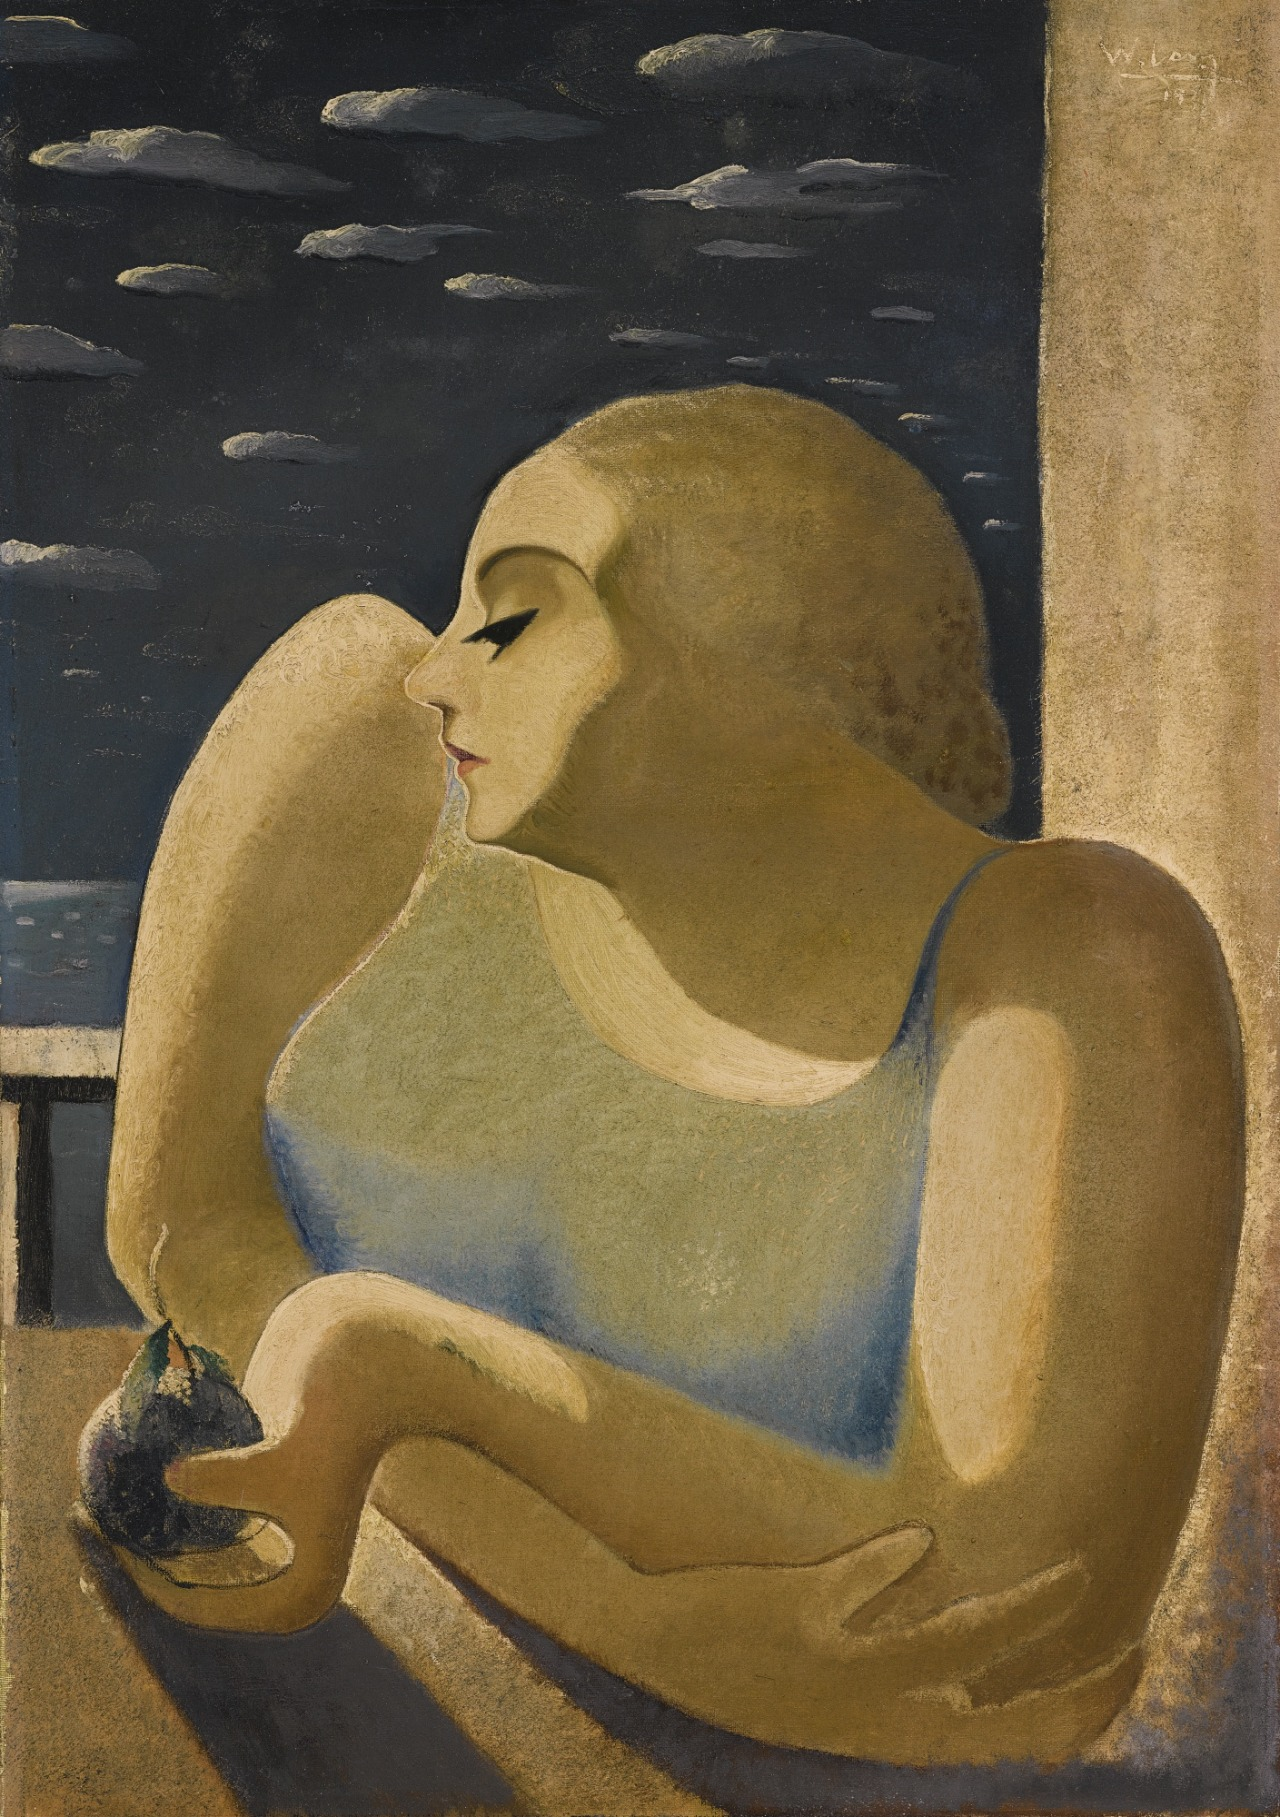 lawrenceleemagnuson:  Wifredo Lam (Cuba 1902-1982) Untitled (Eva) 1931 oil on canvas 80.6 x 56 cm